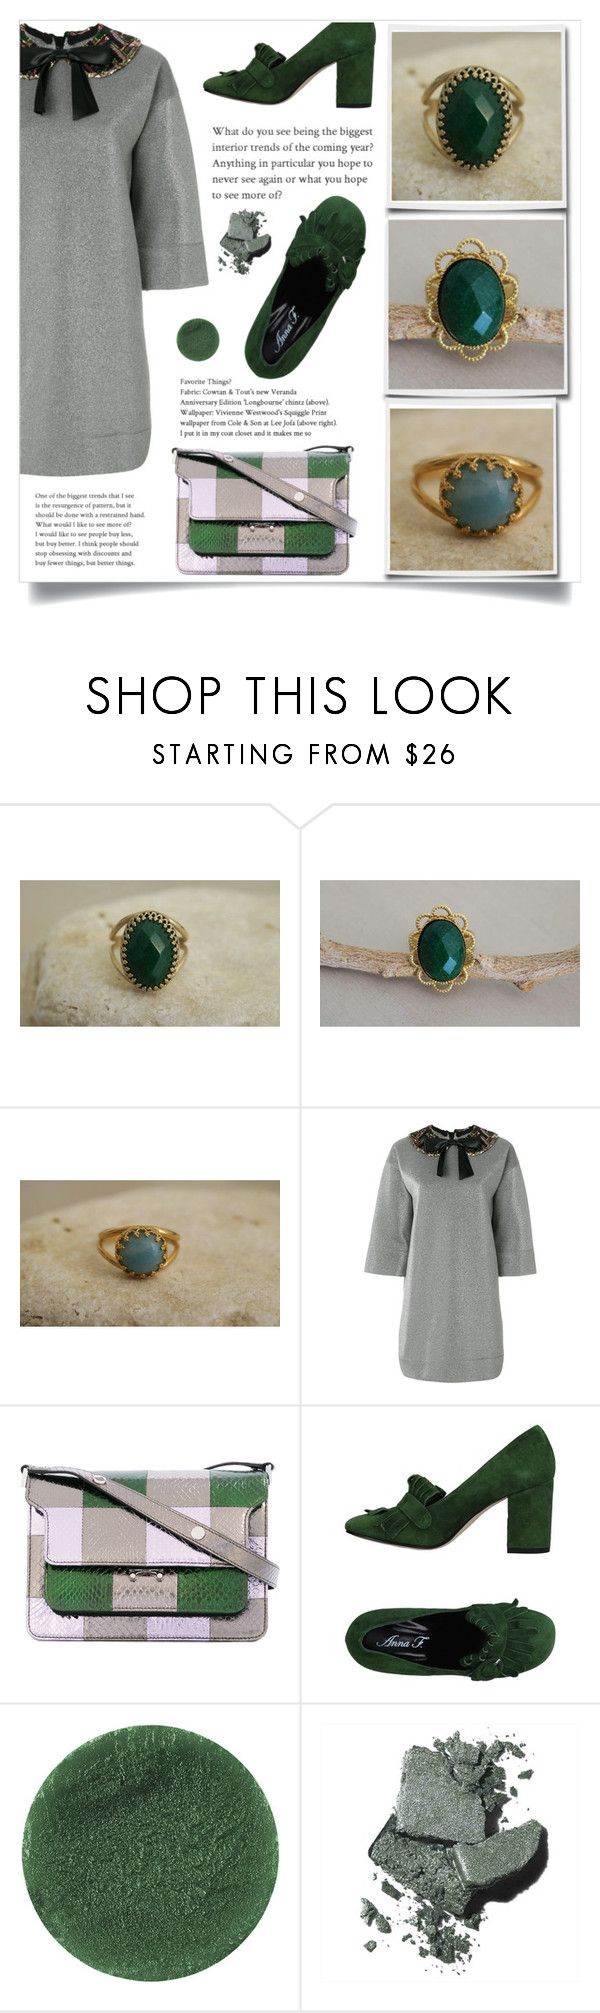 """""""Best Offers Boutique!"""" by samra-bv ❤ liked on Polyvore featuring Gucci, Marni, Anna F., Lipstick Queen, Bobbi Brown Cosmetics and vintage"""